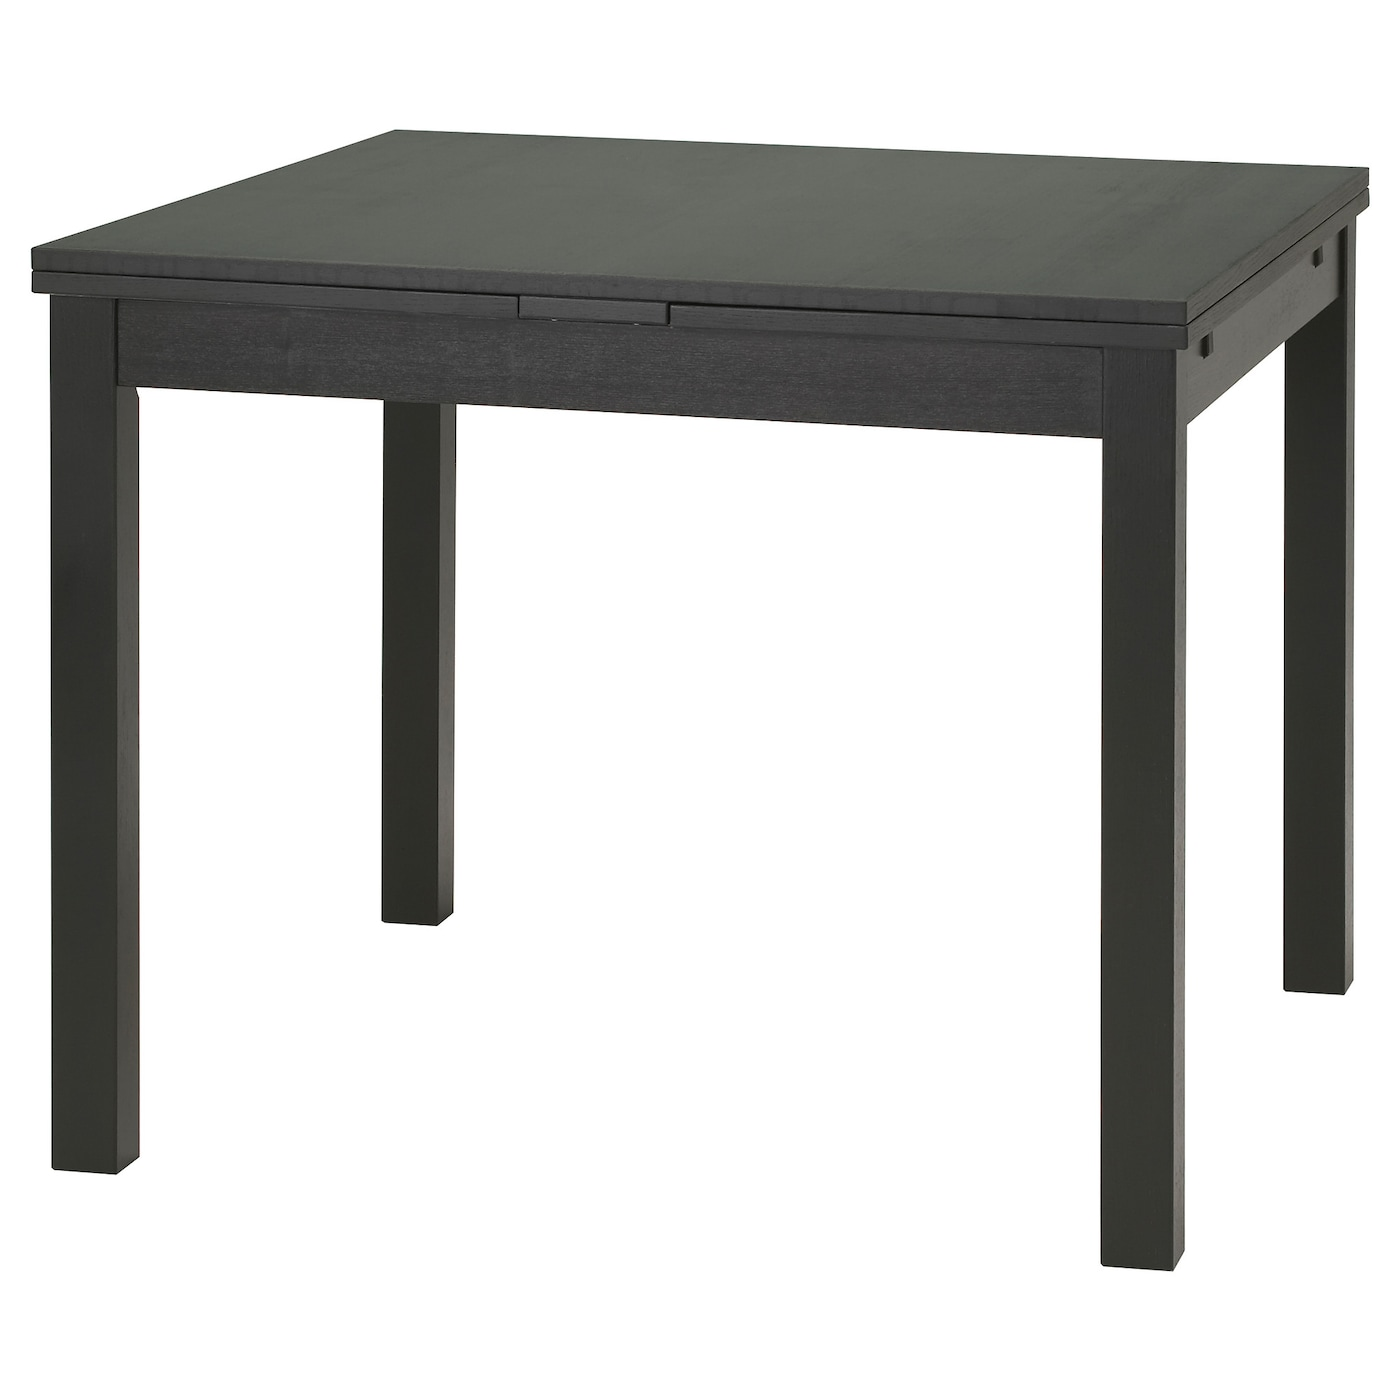 Bjursta extendable table brown black 90 129 168x90 cm ikea for Table noir salle a manger